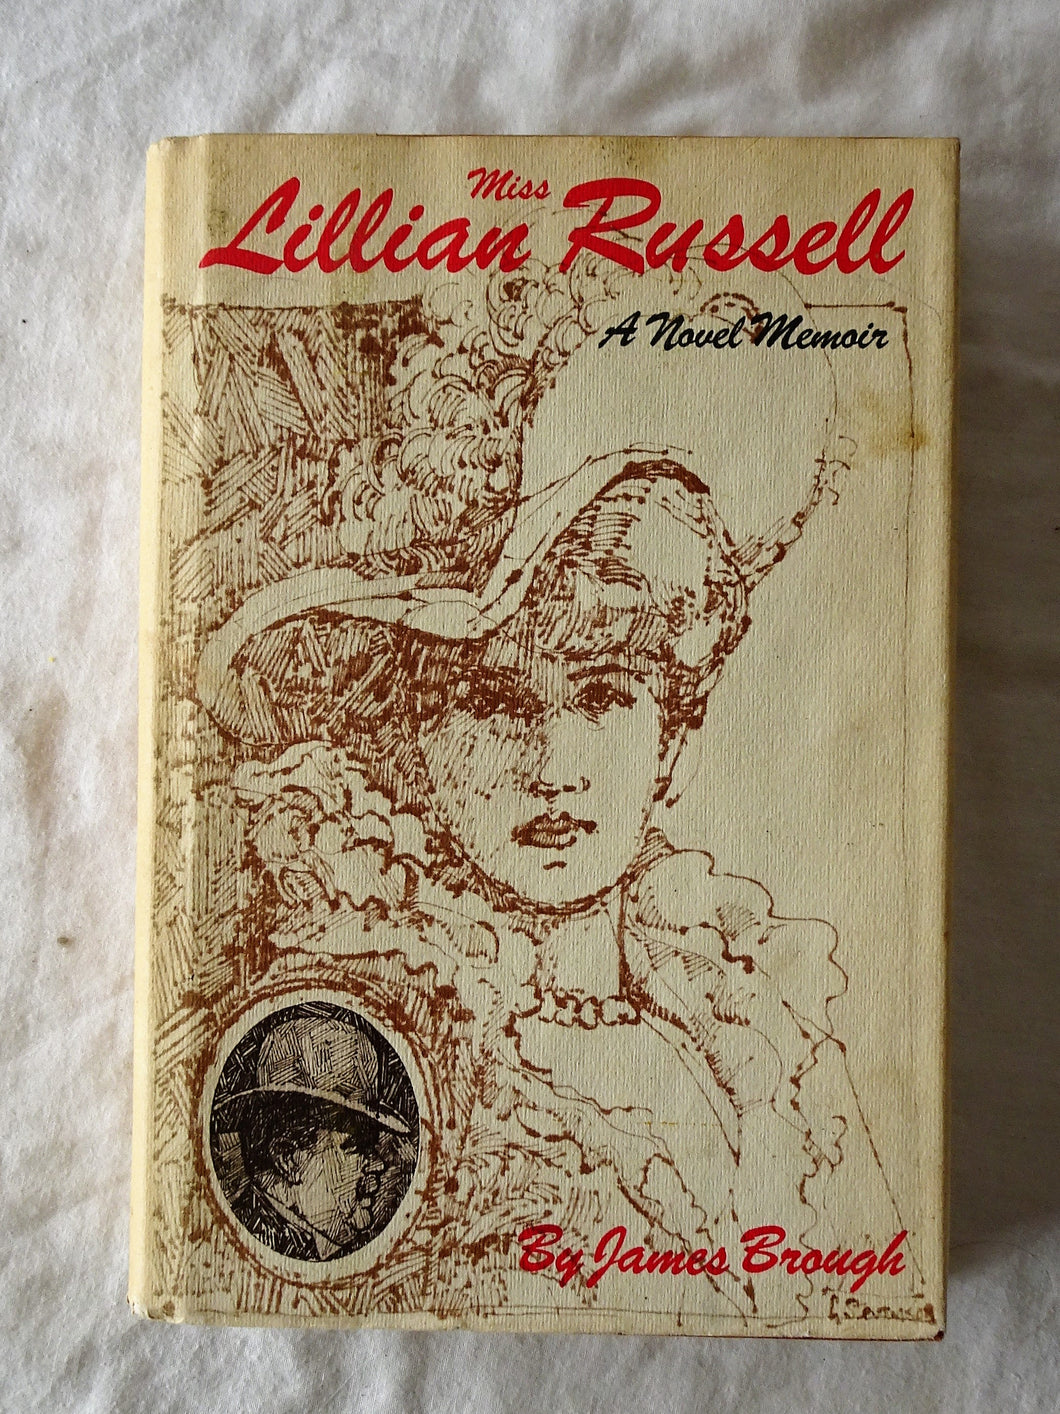 Miss Lillian Russell by James Brough